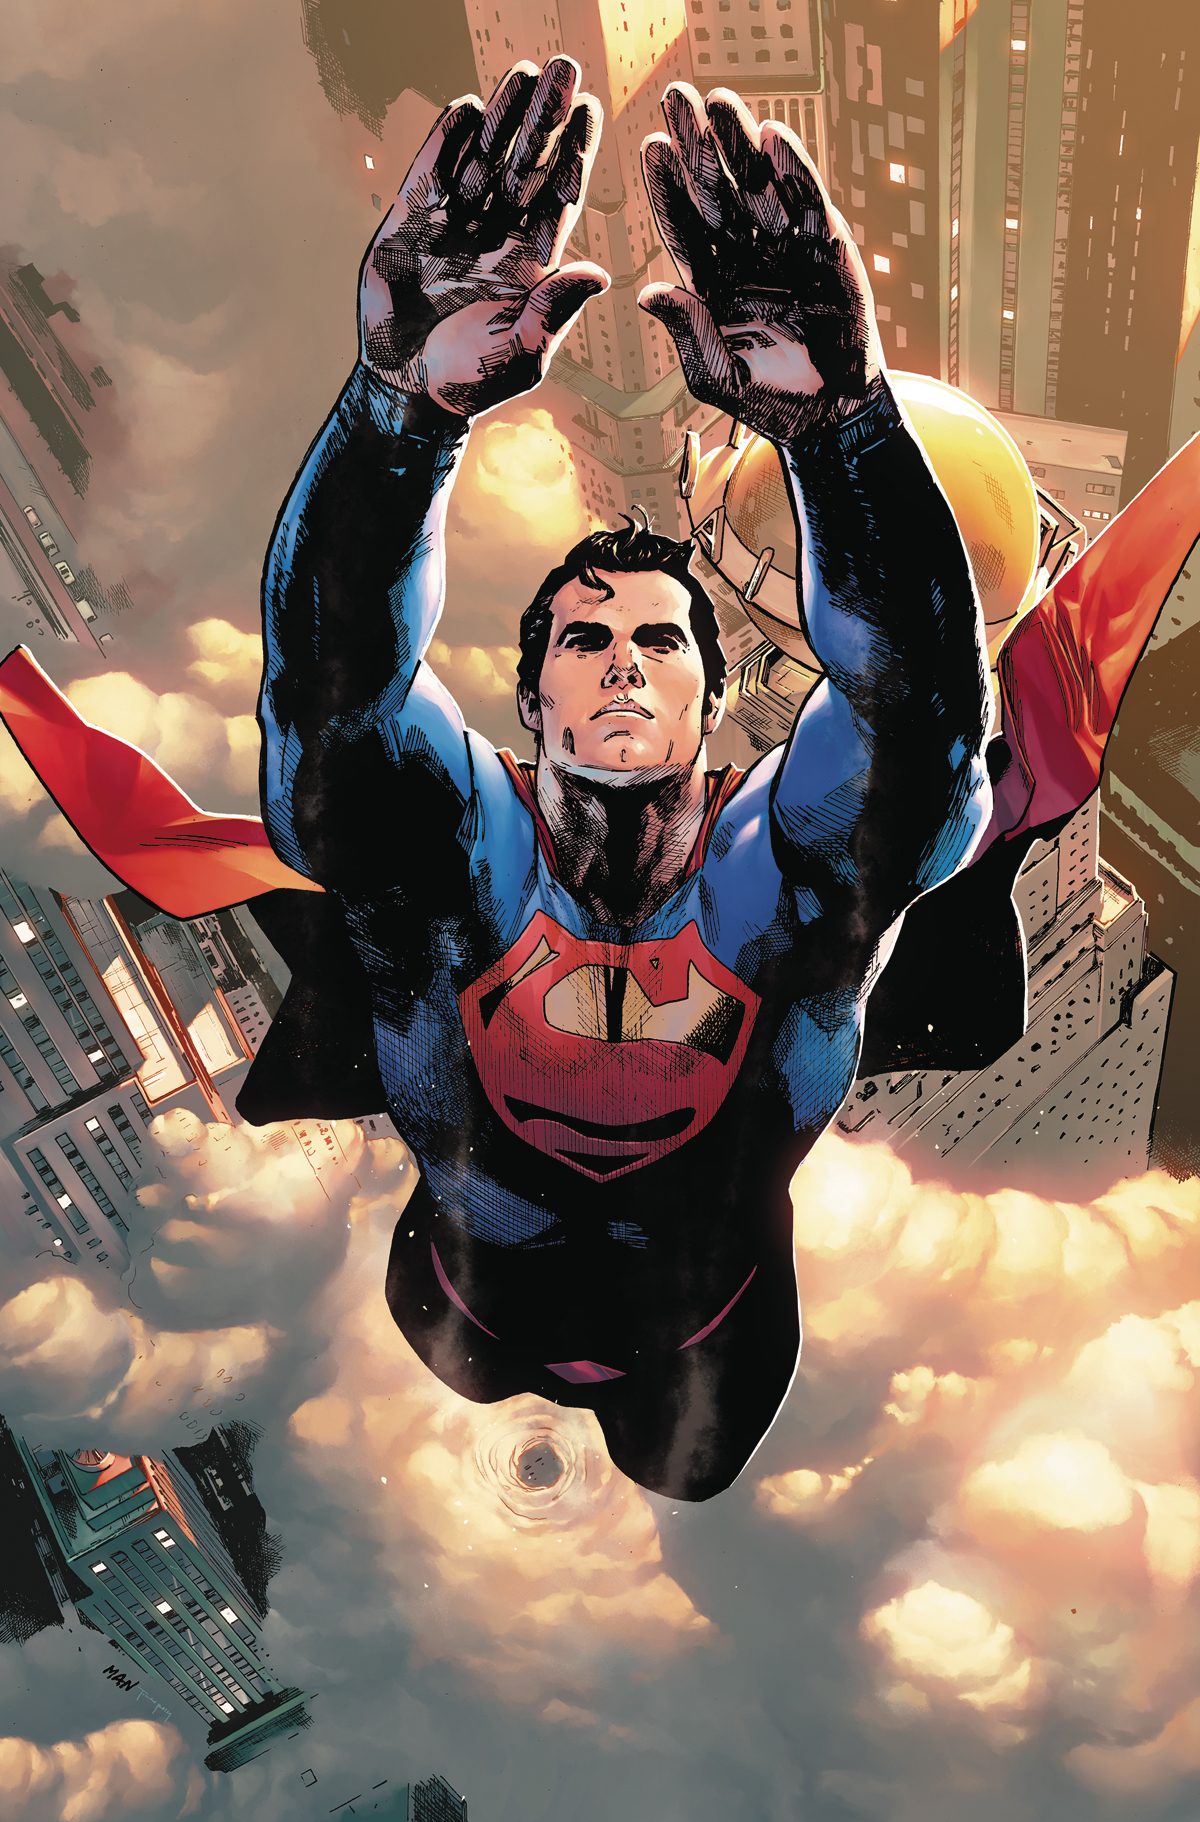 SUPERMAN ACTION COMICS TP VOL 02 WELCOME TO THE PLANET